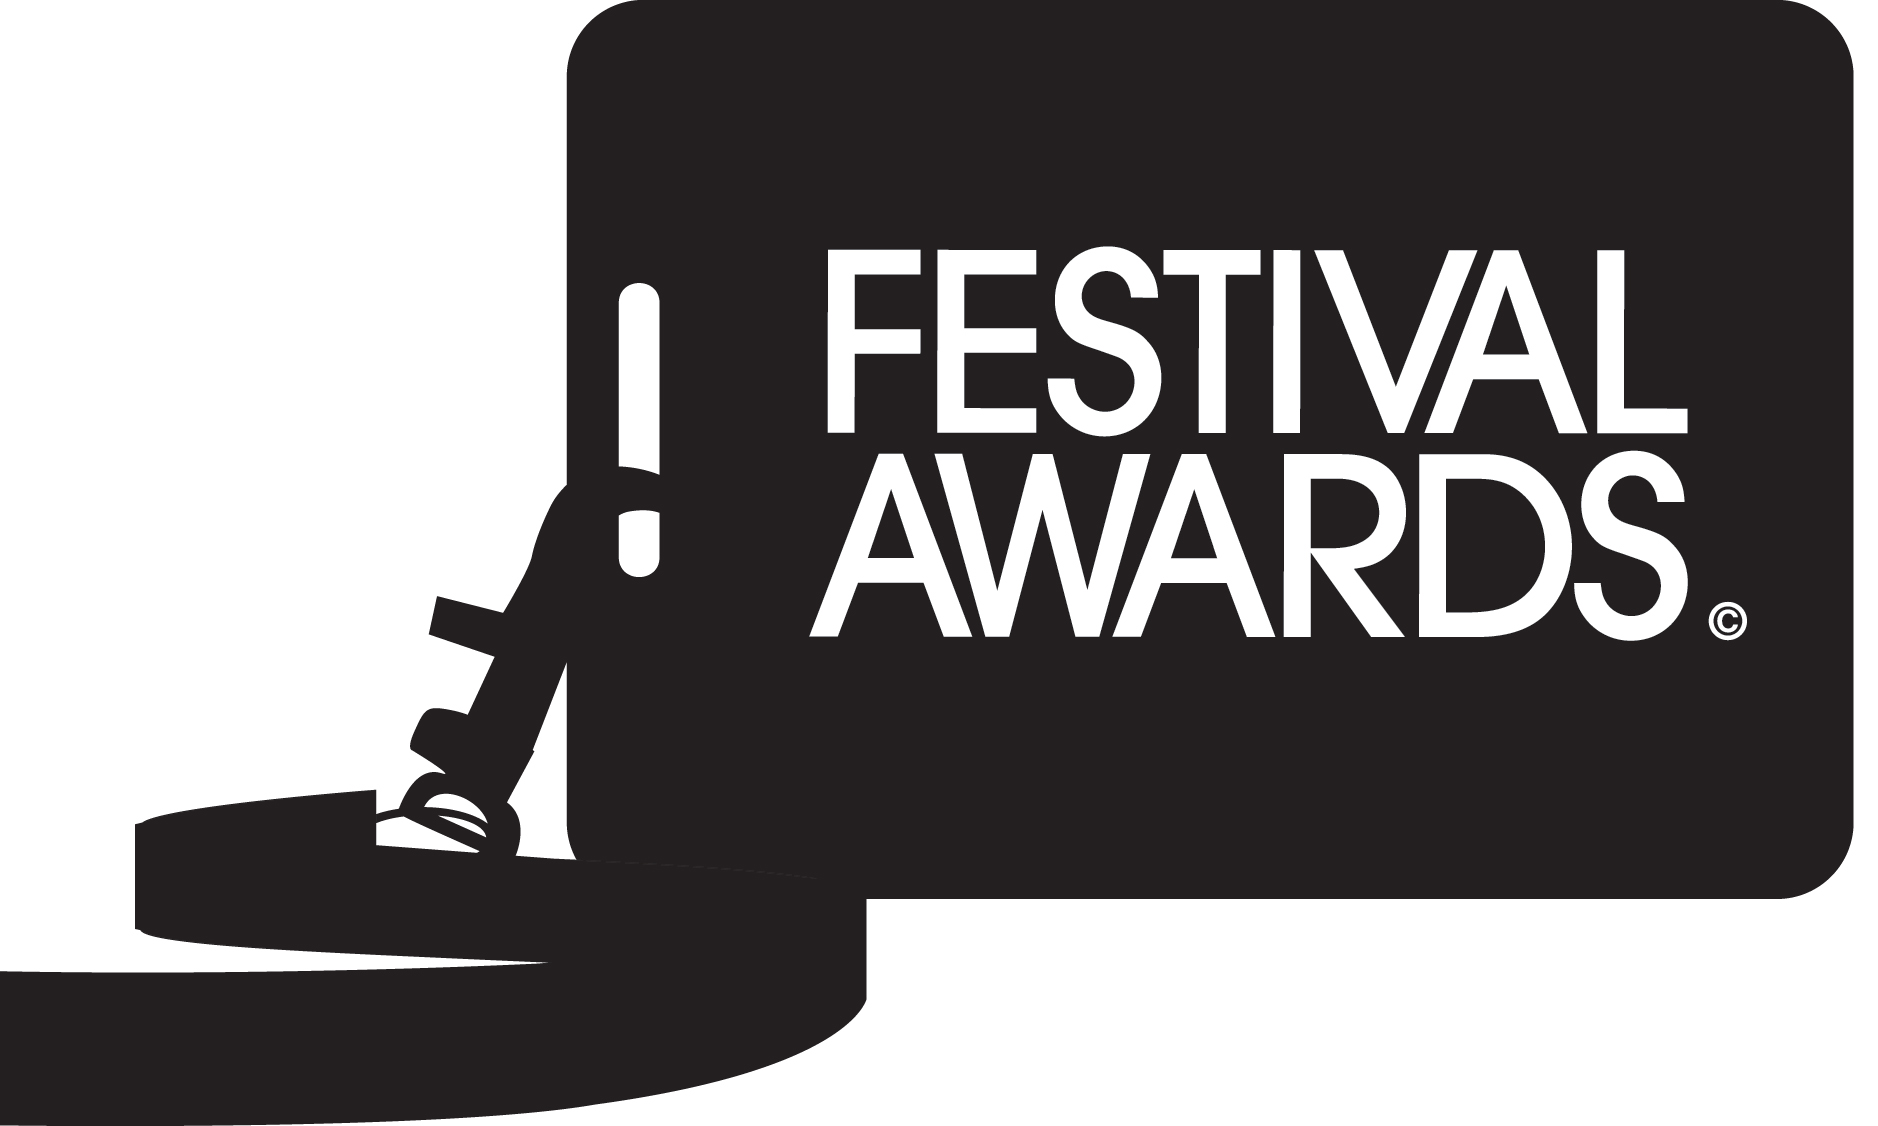 Apply for the Festival Awards